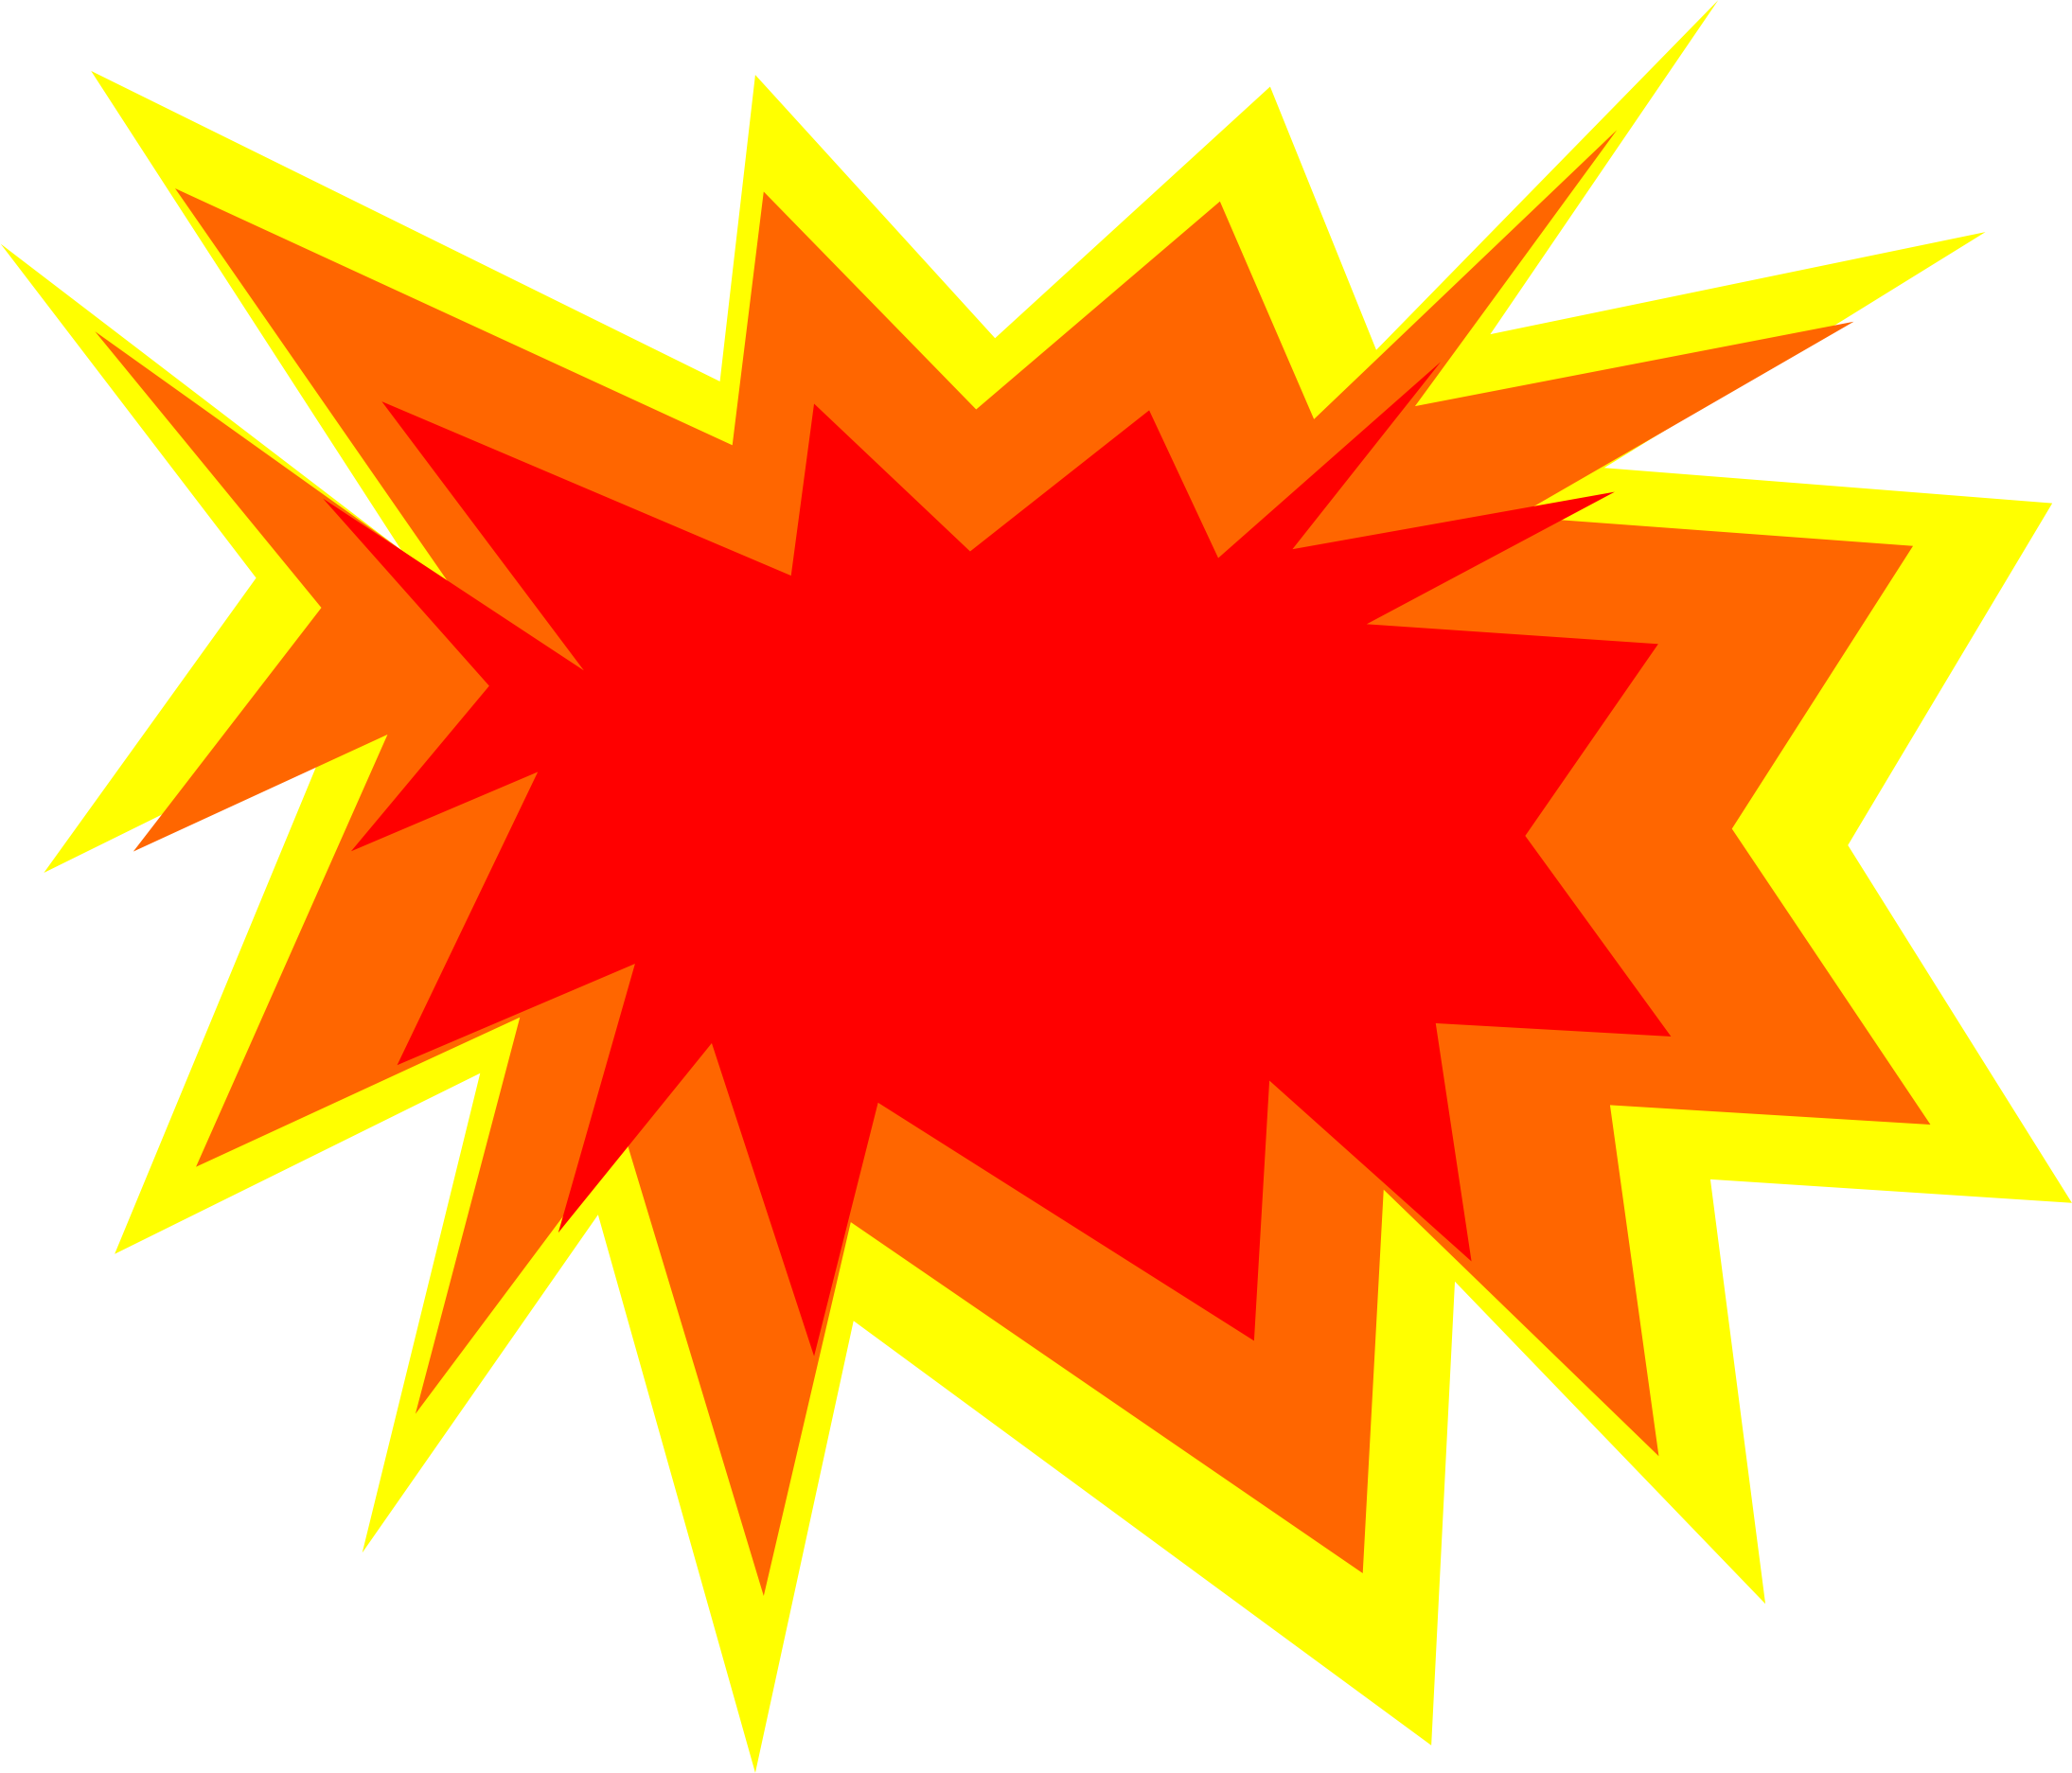 Explosions clipart - Clipground